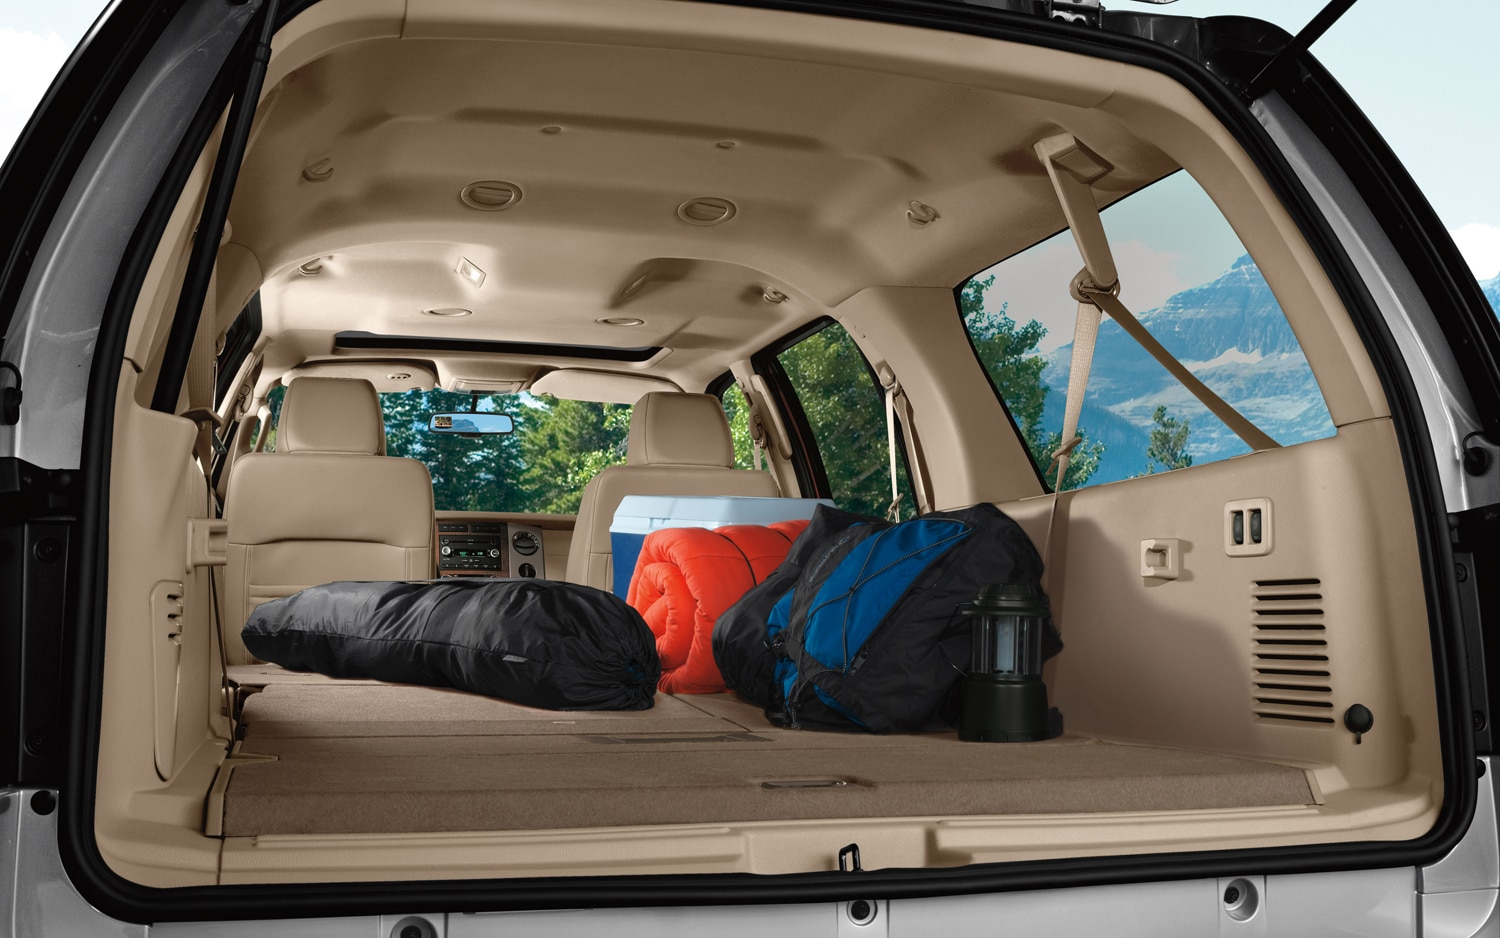 2013 Ford Expedition Cabin